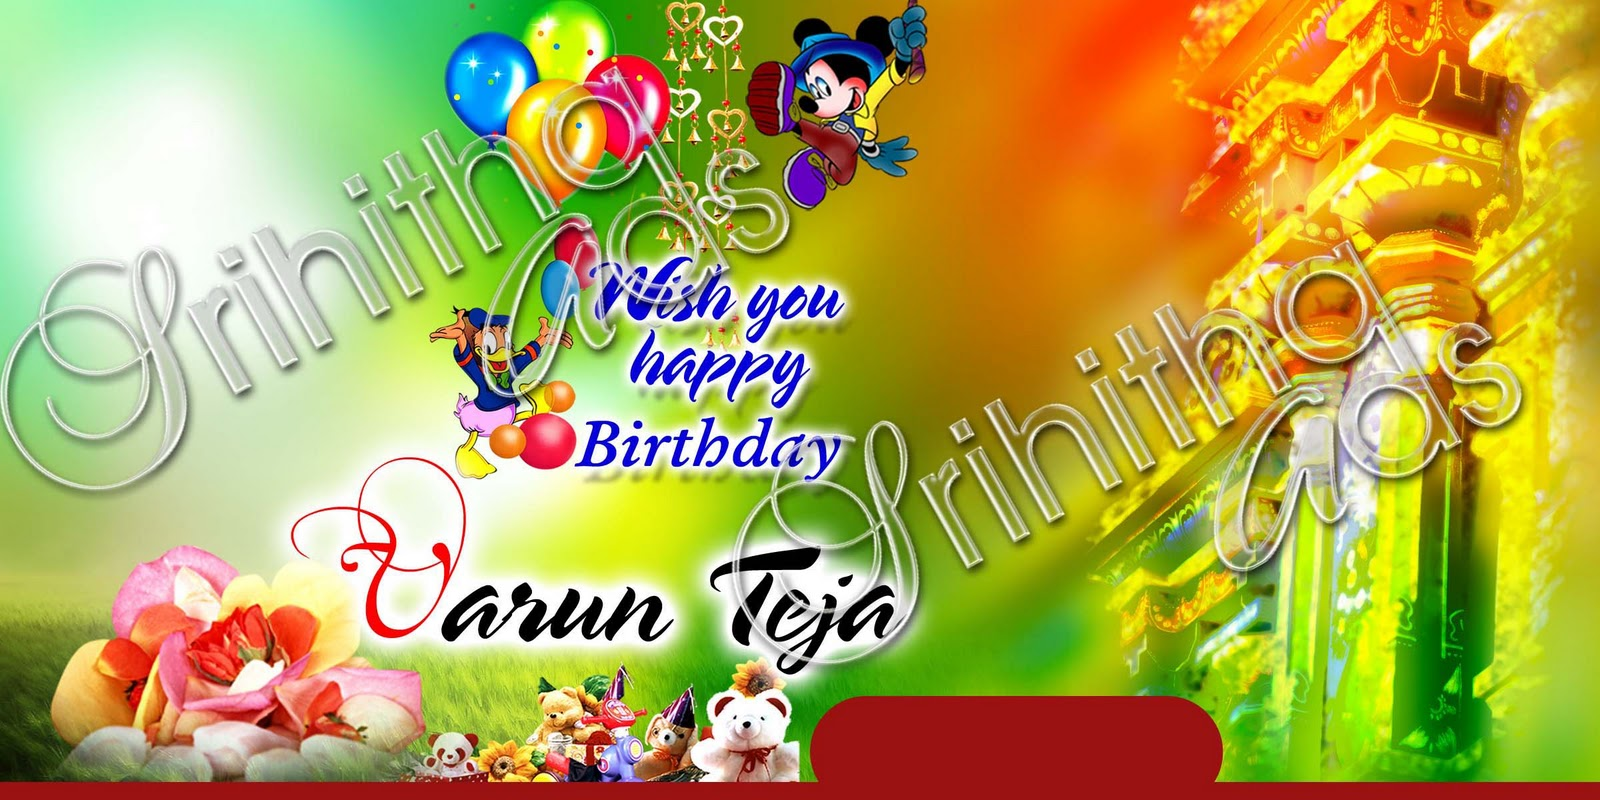 birthday background psd ; birthday-background-psd-images-4